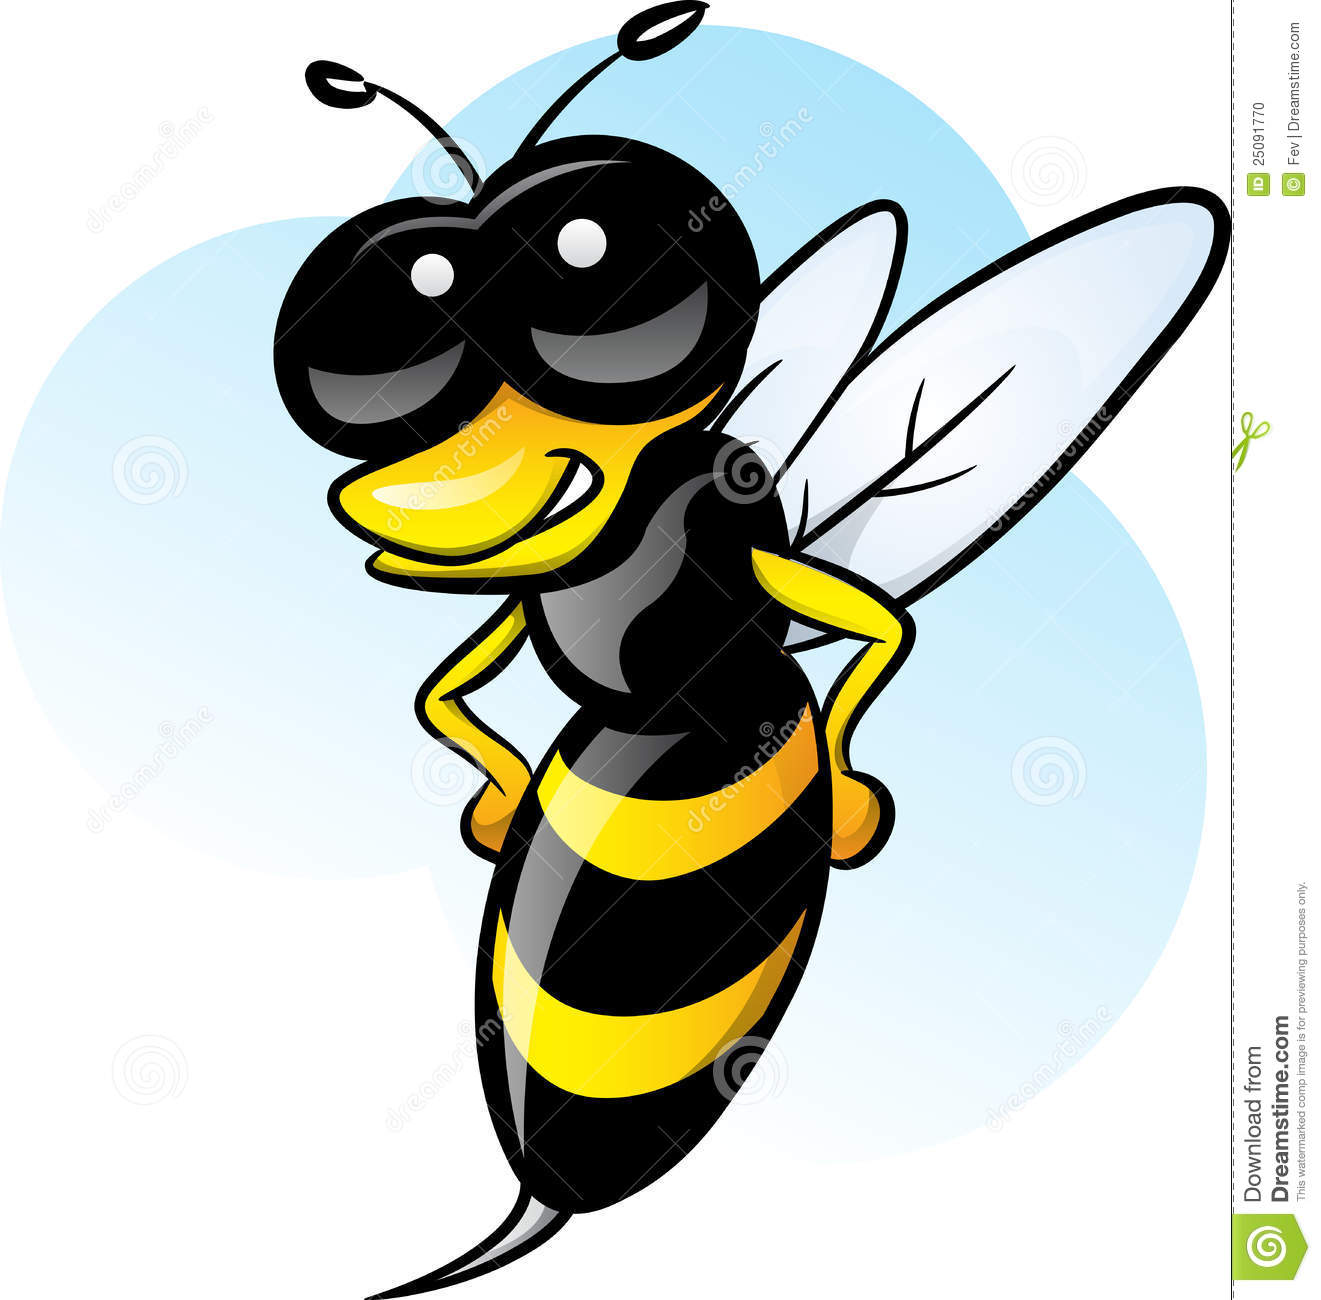 Black Bumble Bee >> Bee stock vector. Image of needle, sting, isolated, insect - 25091770